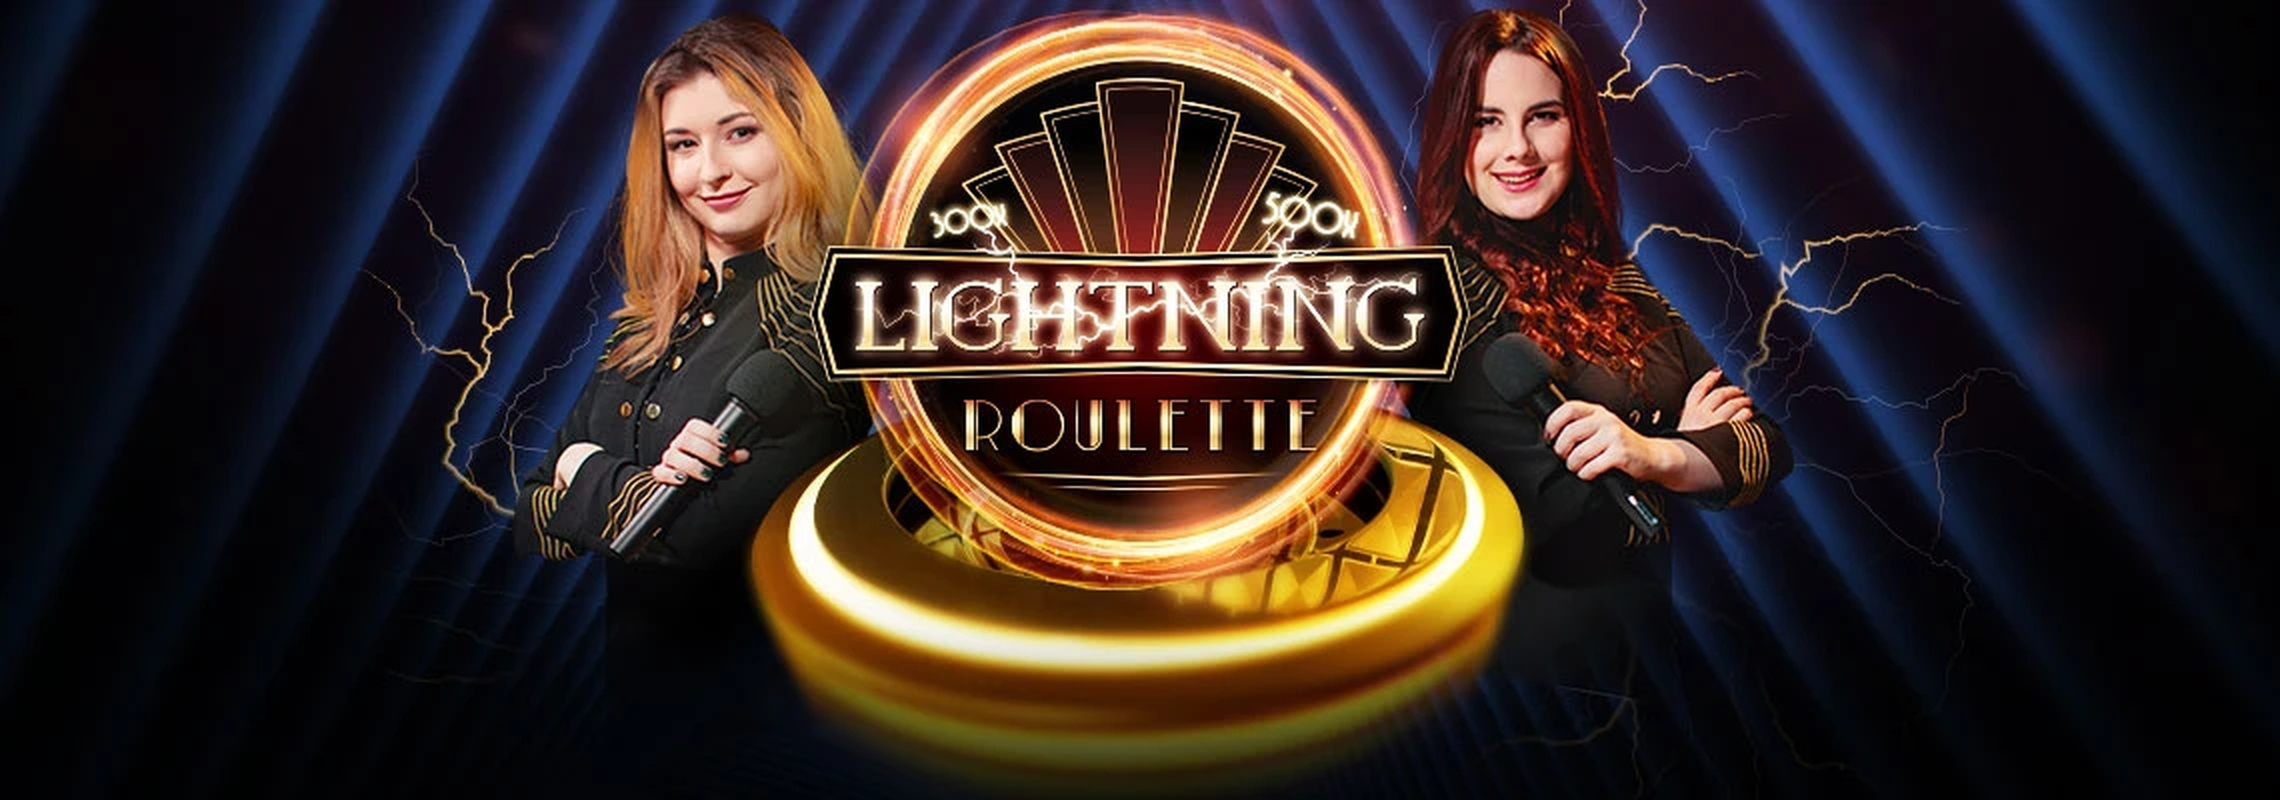 The Lightning Roulette Online Slot Demo Game by Evolution Gaming